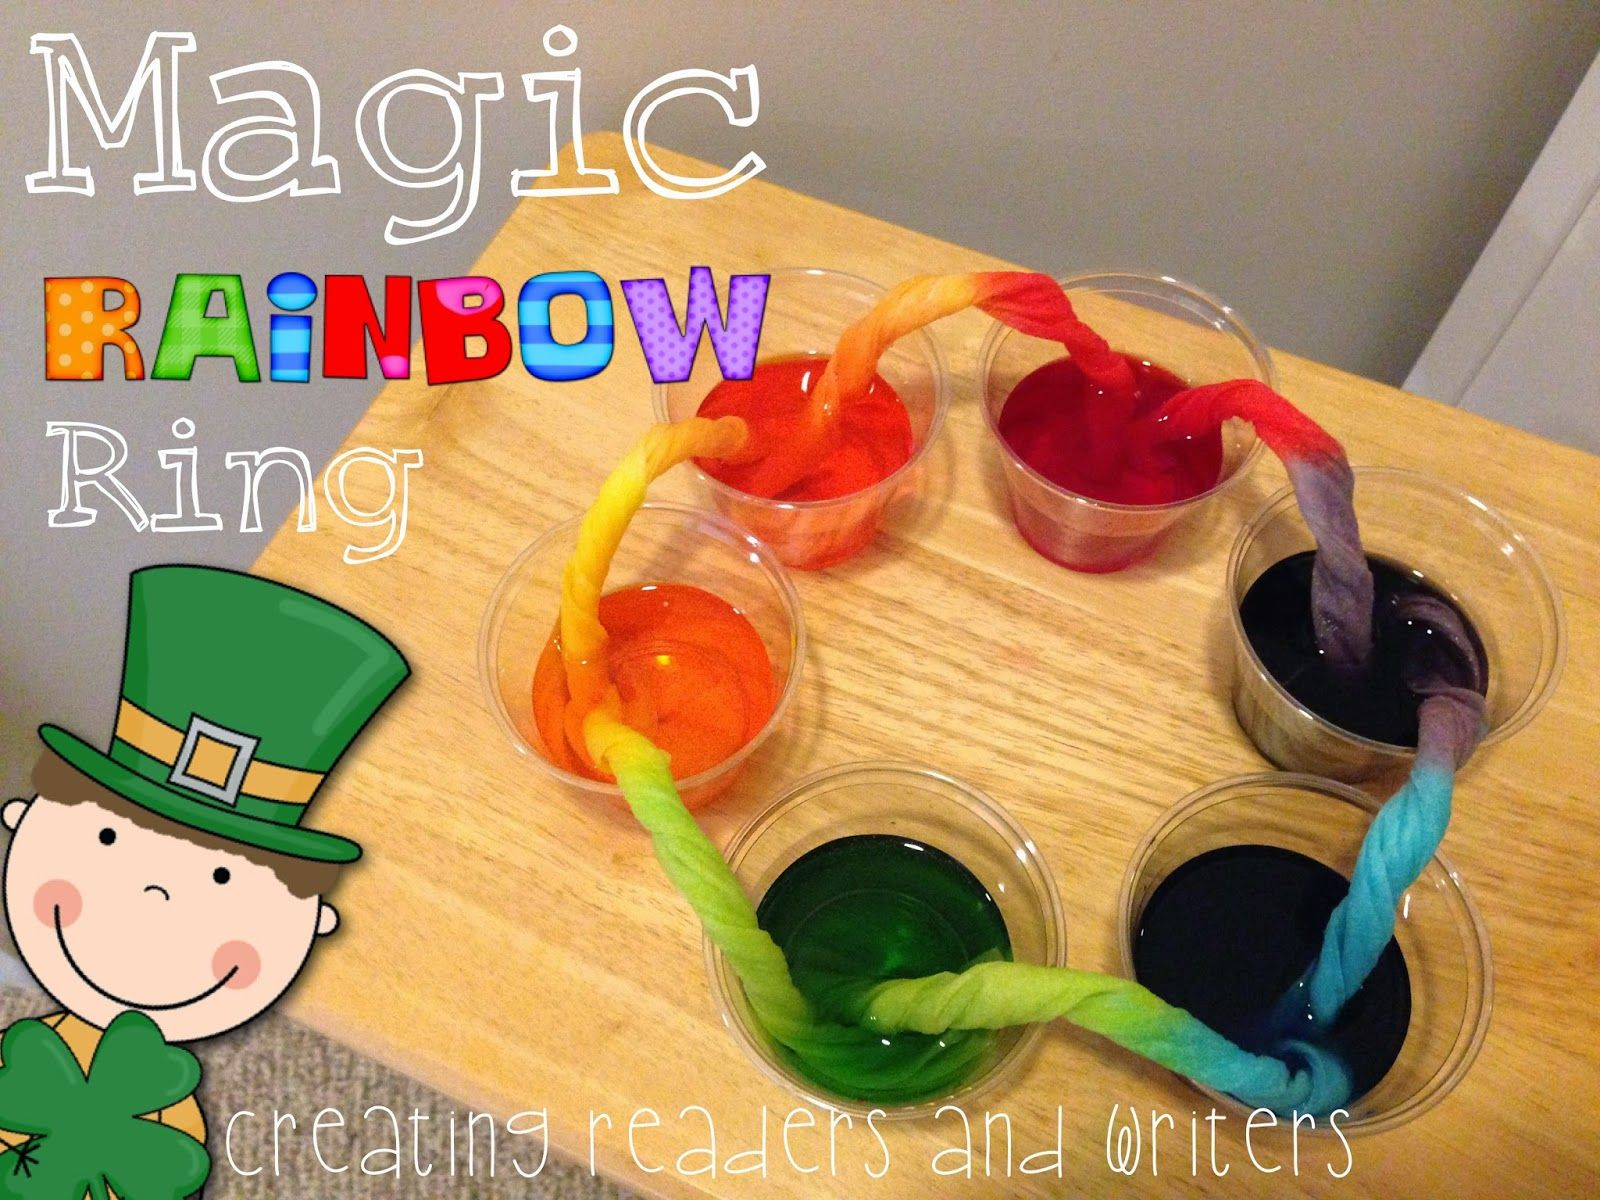 St Patrick S Day Science Creating Readers And Writers St Patrick Day Activities March Kindergarten St Patrick S Day Crafts [ 1200 x 1600 Pixel ]